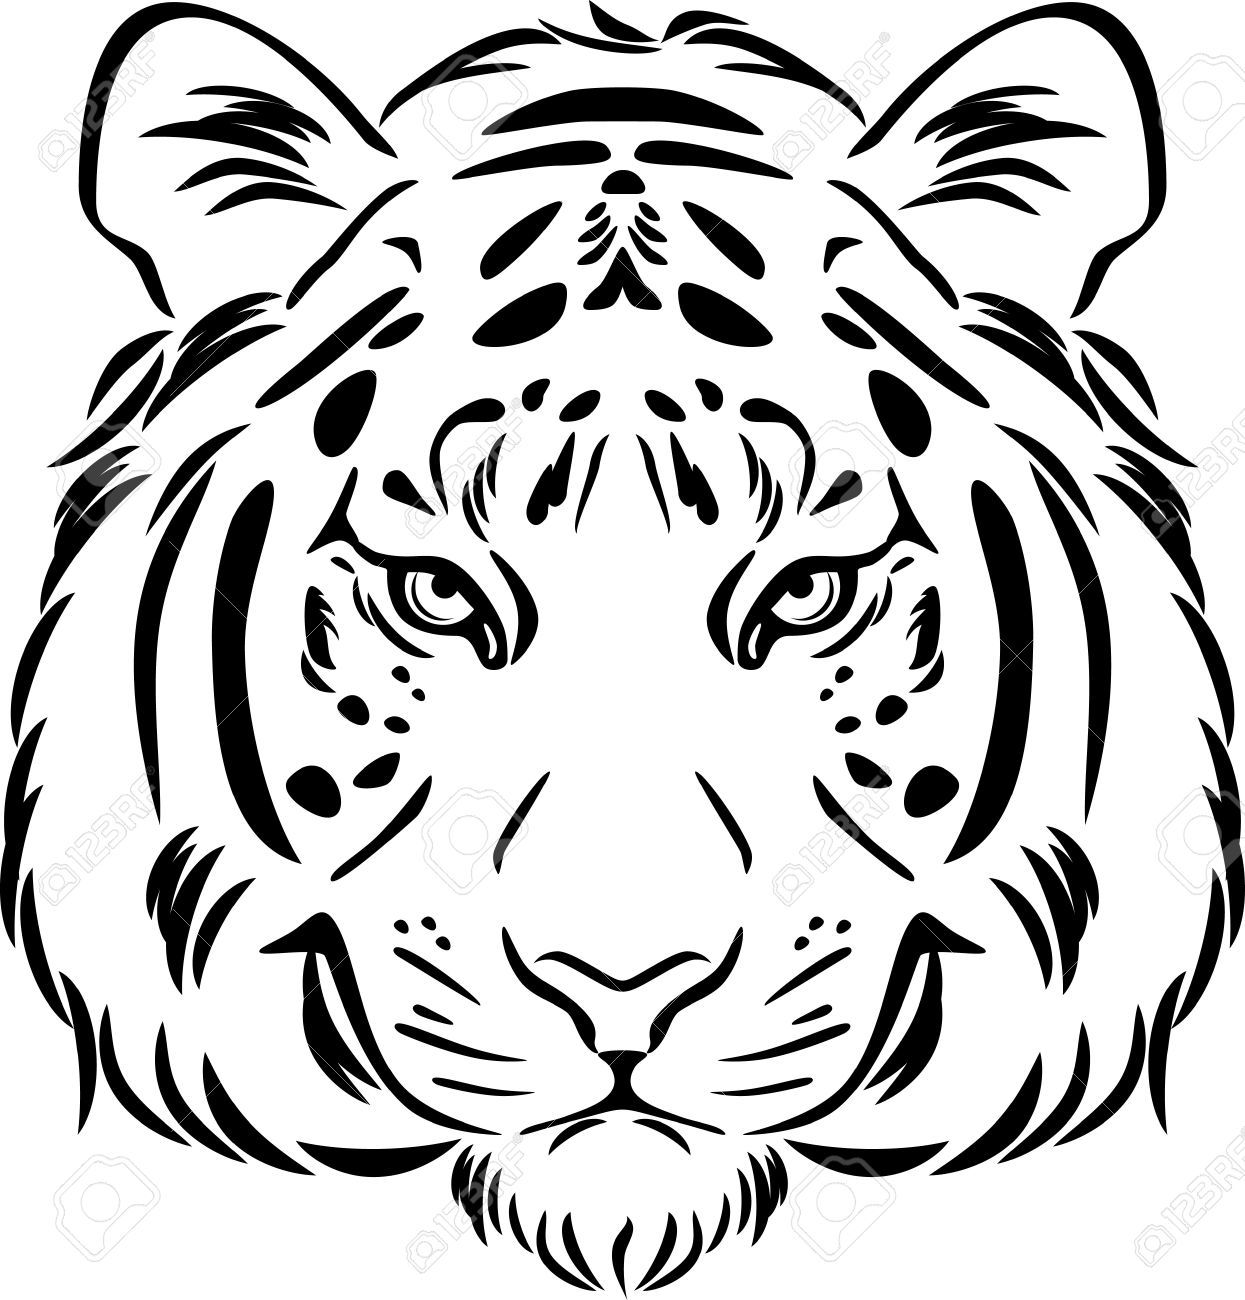 Tiger head clipart black and white 8 » Clipart Portal.